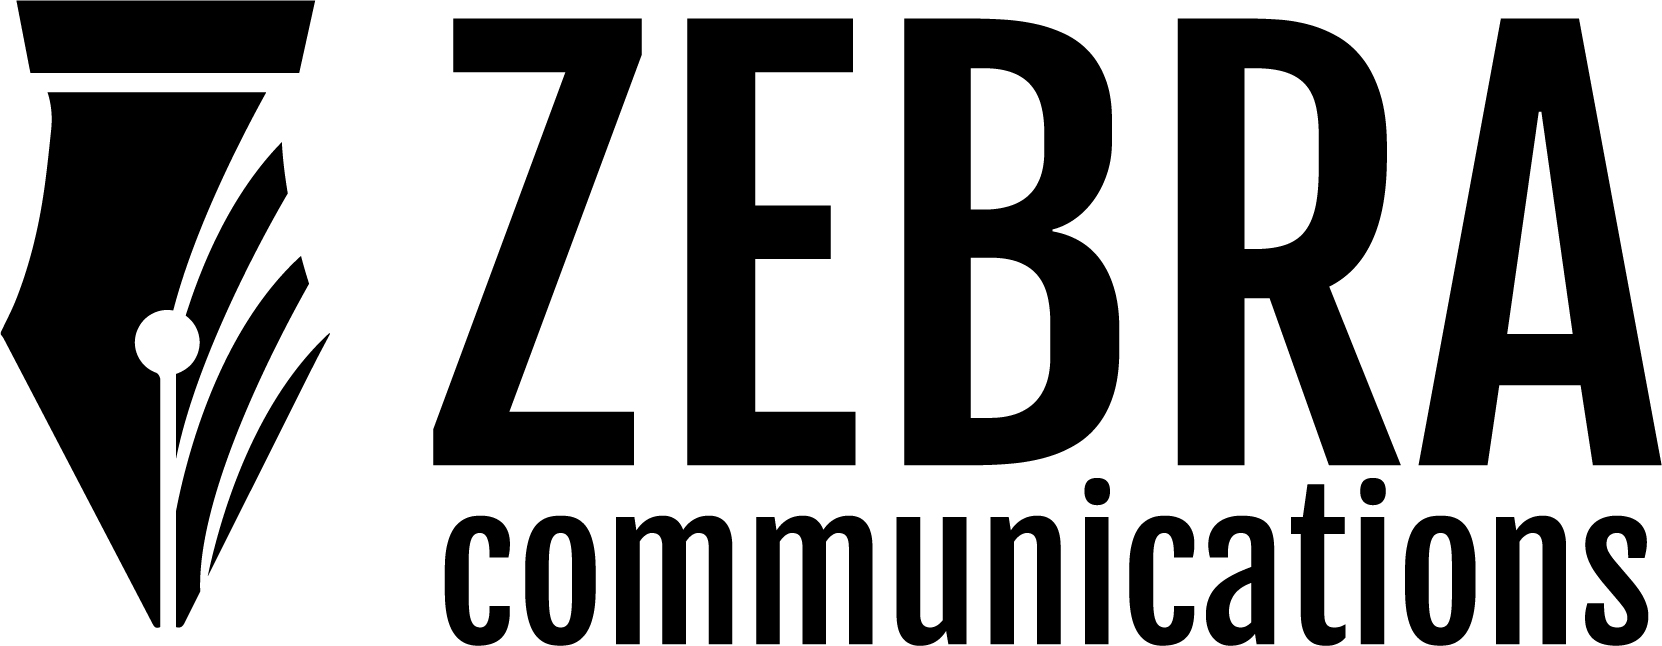 Zebra Communications